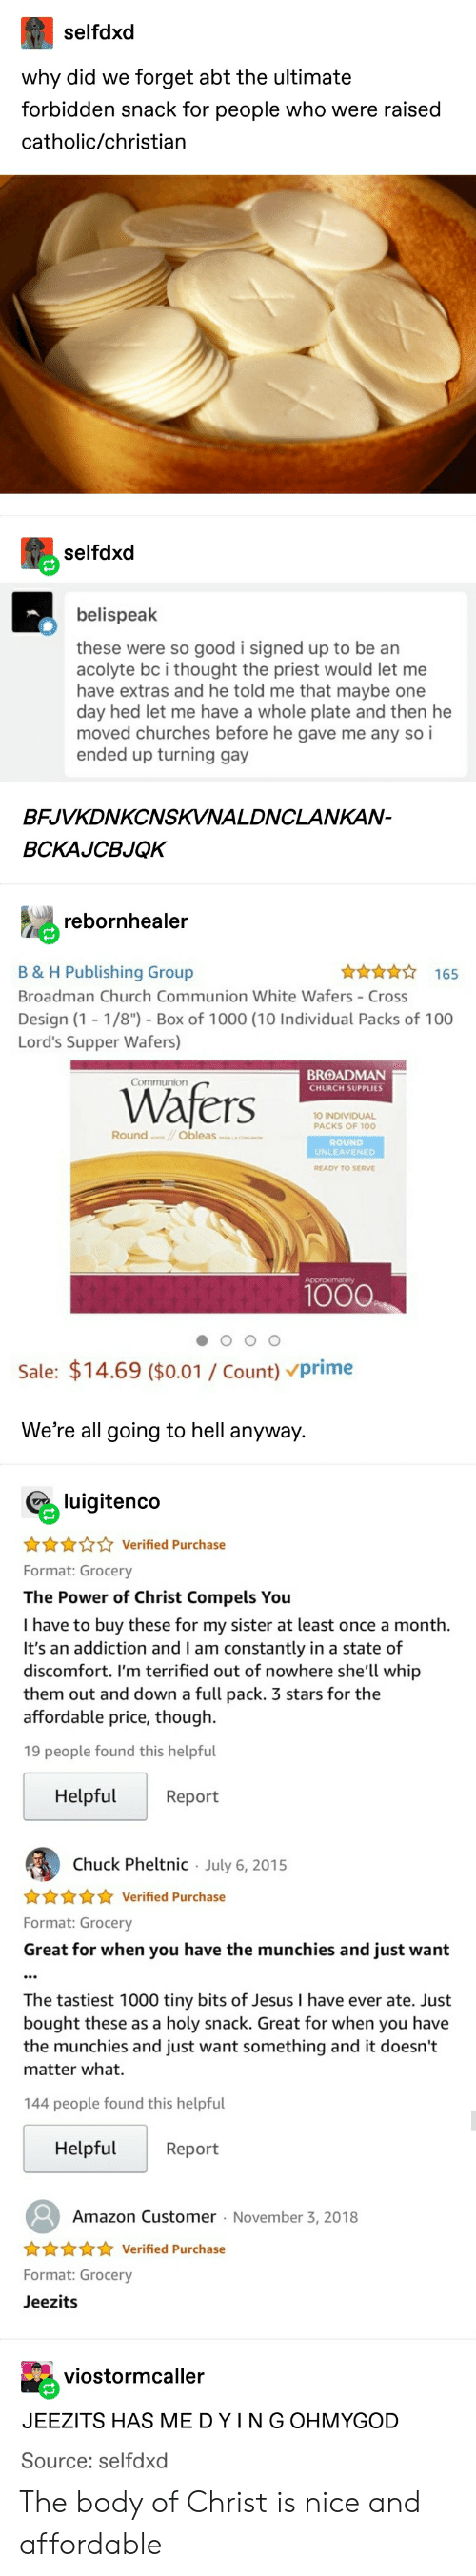 """Amazon, Church, and Jesus: selfdxd  why did we forget abt the ultimate  forbidden snack for people who were raised  catholic/christian  selfdxd  belispeak  these were so good i signed up to be an  acolyte bc i thought the priest would let me  have extras and he told me that maybe one  day hed let me have a whole plate and then he  moved churches before he gave me any so i  ended up turning gay  BFJVKDNKCNSKVNALDNCLANKAN-  BCKAJCBJQK  rebornhealer  165  B & H Publishing Group  Broadman Church Communion White Wafers Cross  Design (1 -1/8"""") Box of 1000 (10 Individual Packs of 100  Lord's Supper Wafers)  BROADMAN  Communion  Wafers  CHURCH SUPPLIES  10 INDIVIDUAL  PACKS OF 100  Round ObleasL  ROUND  UNLEAVENED  READY TO SERVE  Approximately  1000  Sale: $14.69 ($0.01 Count) Prime  We're all going to hell anyway.  luigitenco  AVerified Purchase  Format: Grocery  The Power of Christ Compels You  I have to buy these for my sister at least once a month  It's an addiction and I am constantly in a state of  discomfort. I'm terrified out of nowhere she'll whip  them out and down a full pack. 3 stars for the  affordable price, though.  19 people found this helpful  Helpful  Report  Chuck Pheltnic July 6, 2015  .  Verified Purchase  Format: Grocery  Great for when you have the munchies and just want  The tastiest 1000 tiny bits of Jesus I have ever ate. Just  bought these as a holy snack. Great for when you have  the munchies and just want something and it doesn't  matter what.  144 people found this helpful  Helpful  Report  Amazon Customer November 3, 2018  .  nnf Verified Purchase  Format: Grocery  Jeezits  viostormcaller  JEEZITS HAS ME D Y I N G OHMYGOD  Source: selfdxd The body of Christ is nice and affordable"""